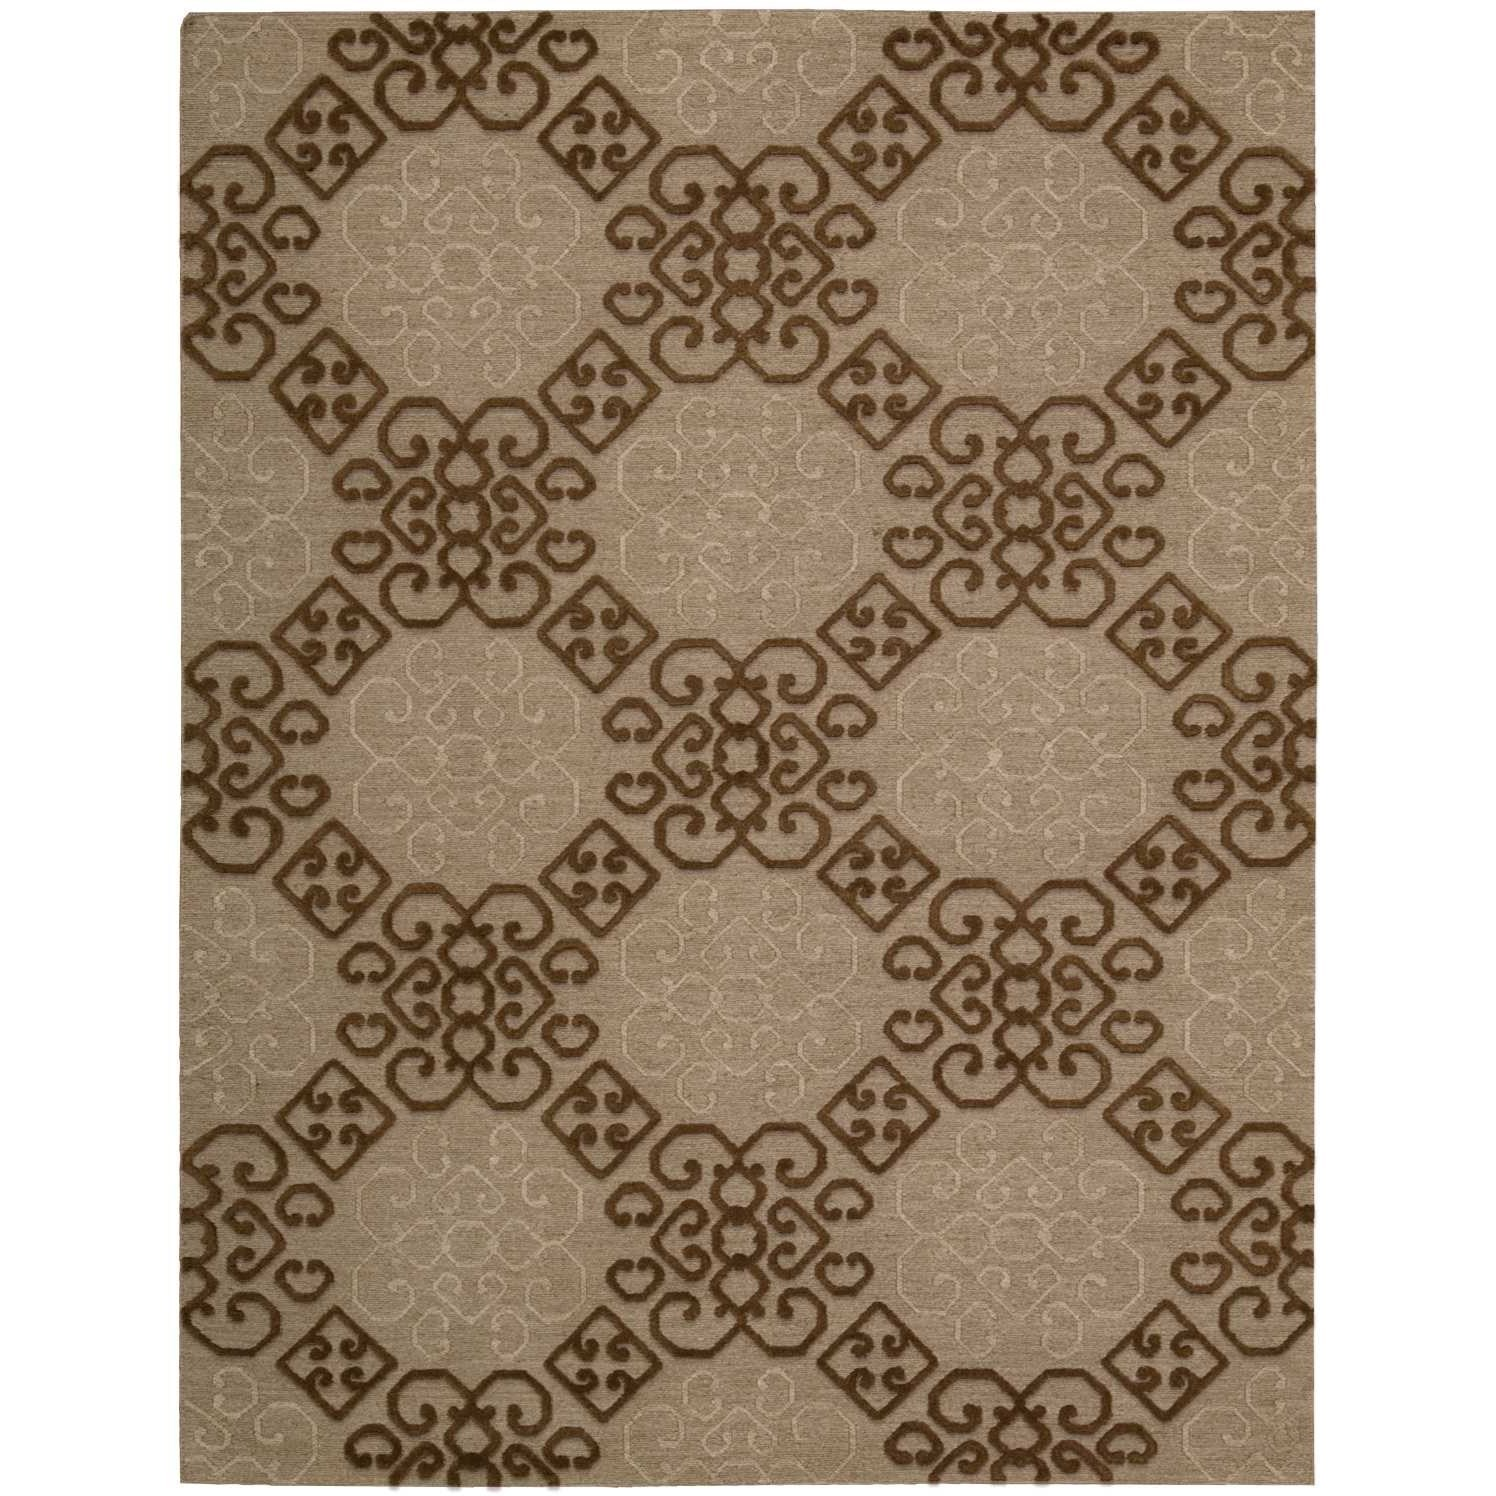 """Ambrose 9'9"""" x 13'9"""" Almond Rectangle Rug by Nourison at Home Collections Furniture"""